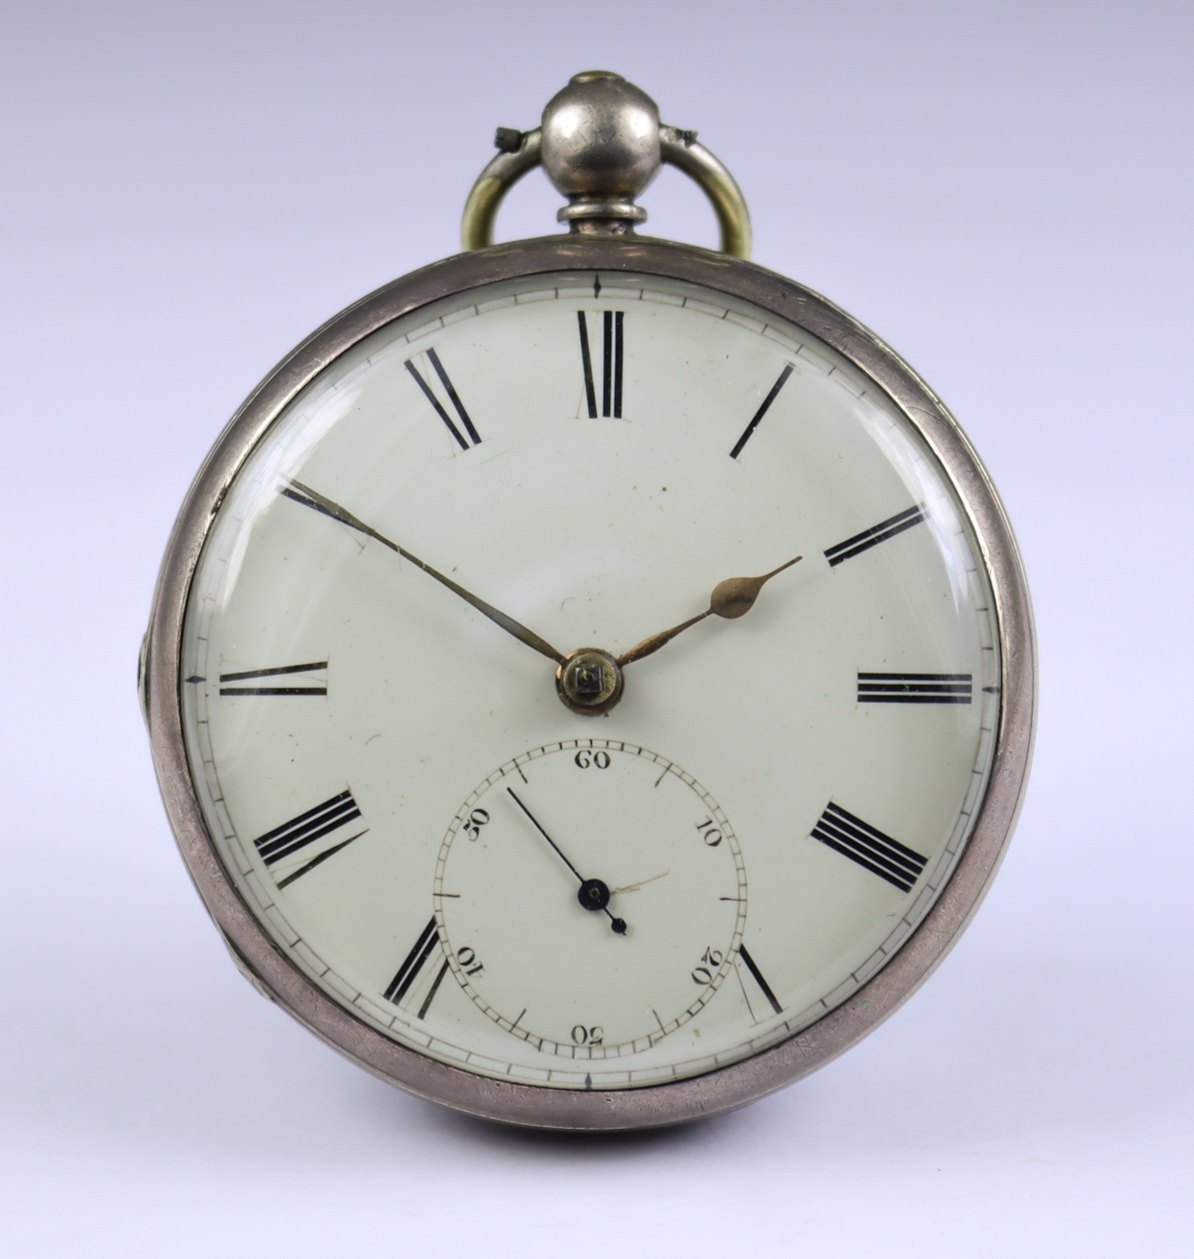 Four Silver Cased Open Faced Pocket Watches, comprising - one unsigned, 1856, 52mm